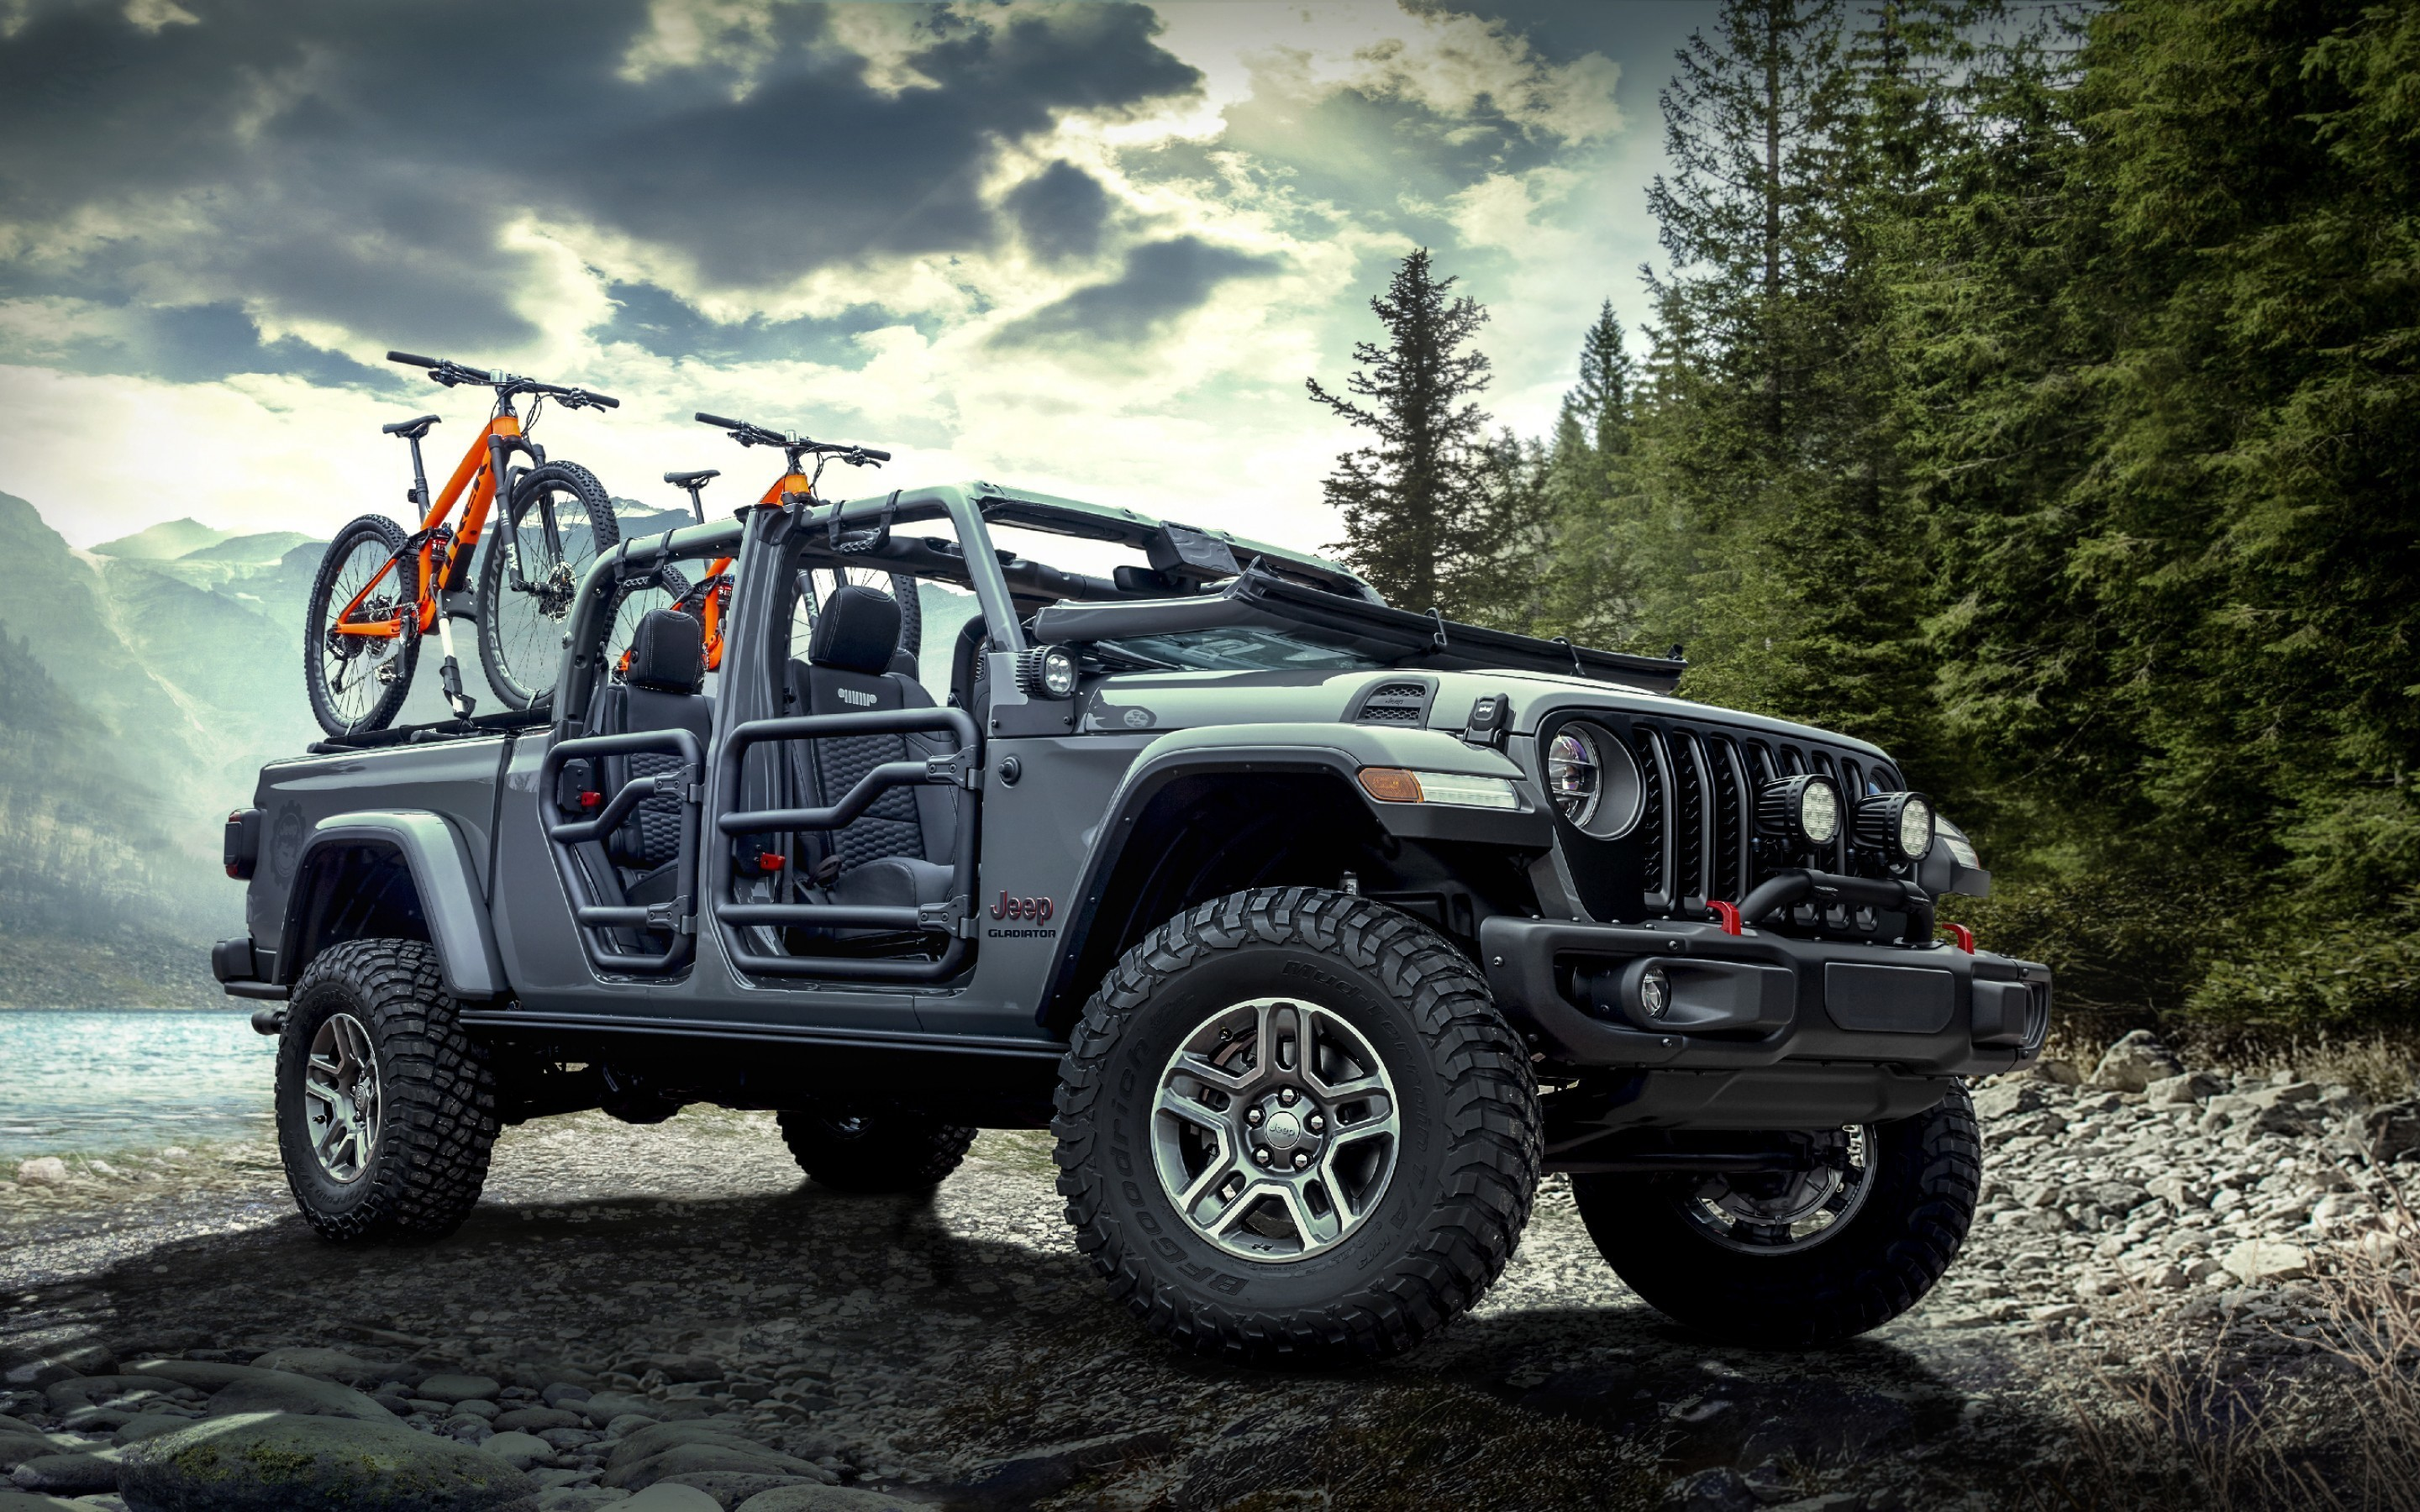 2020 UpComing Jeep Gladiator Rubicon Car HD Wallpapers 2880x1800